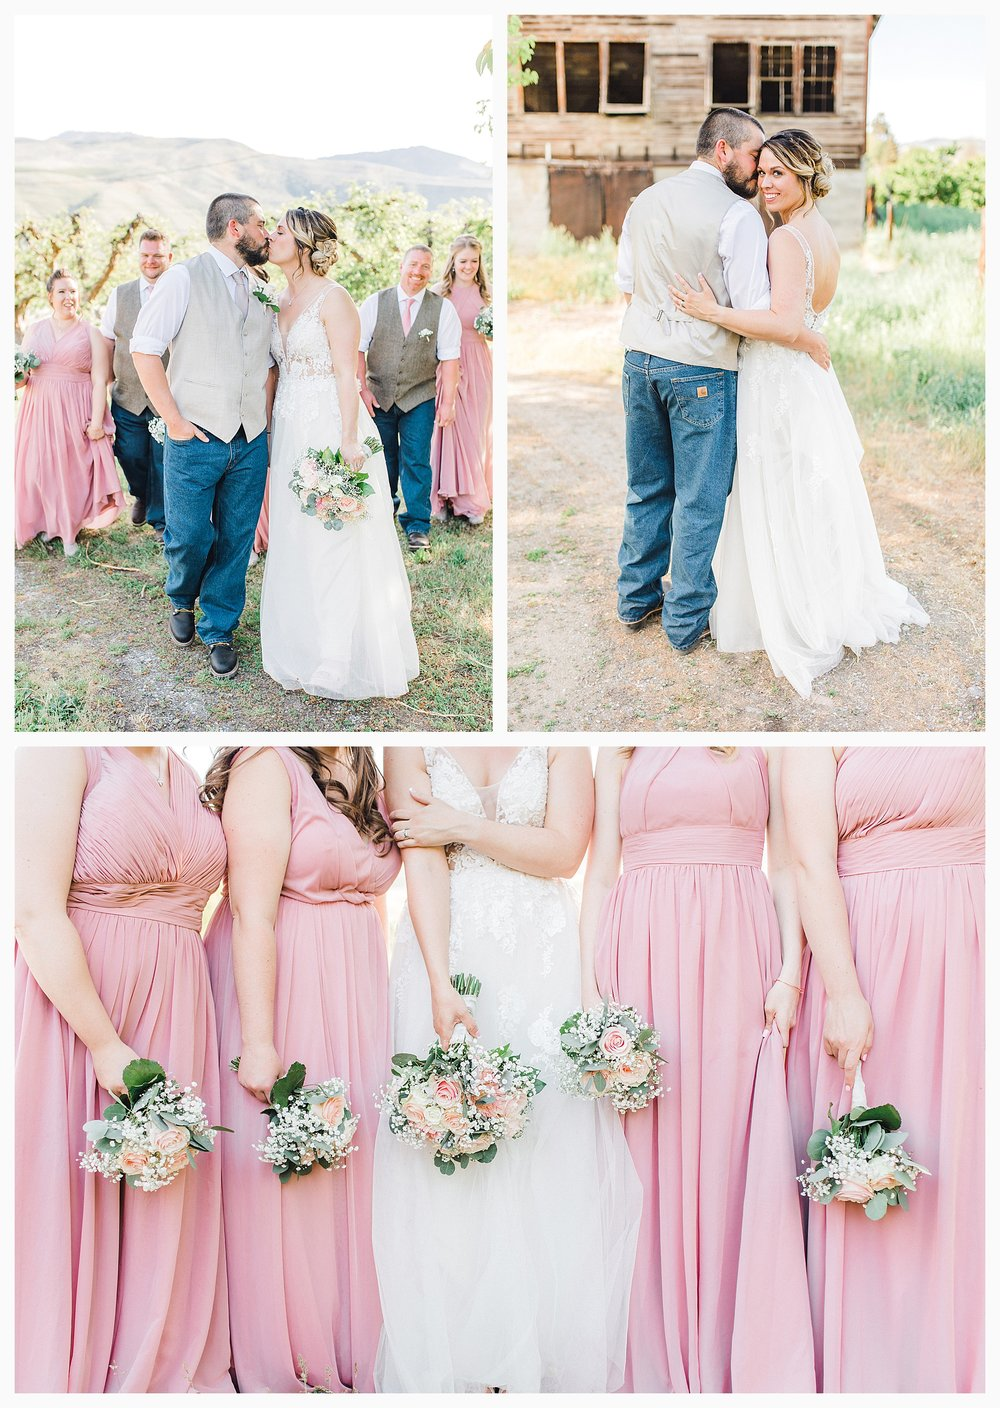 Rustic barn wedding in Wenatchee Washington at Sunshine Ranch on Easy Street, Emma Rose Company Seattle PNW Light and Airy Wedding Photographer_0085.jpg